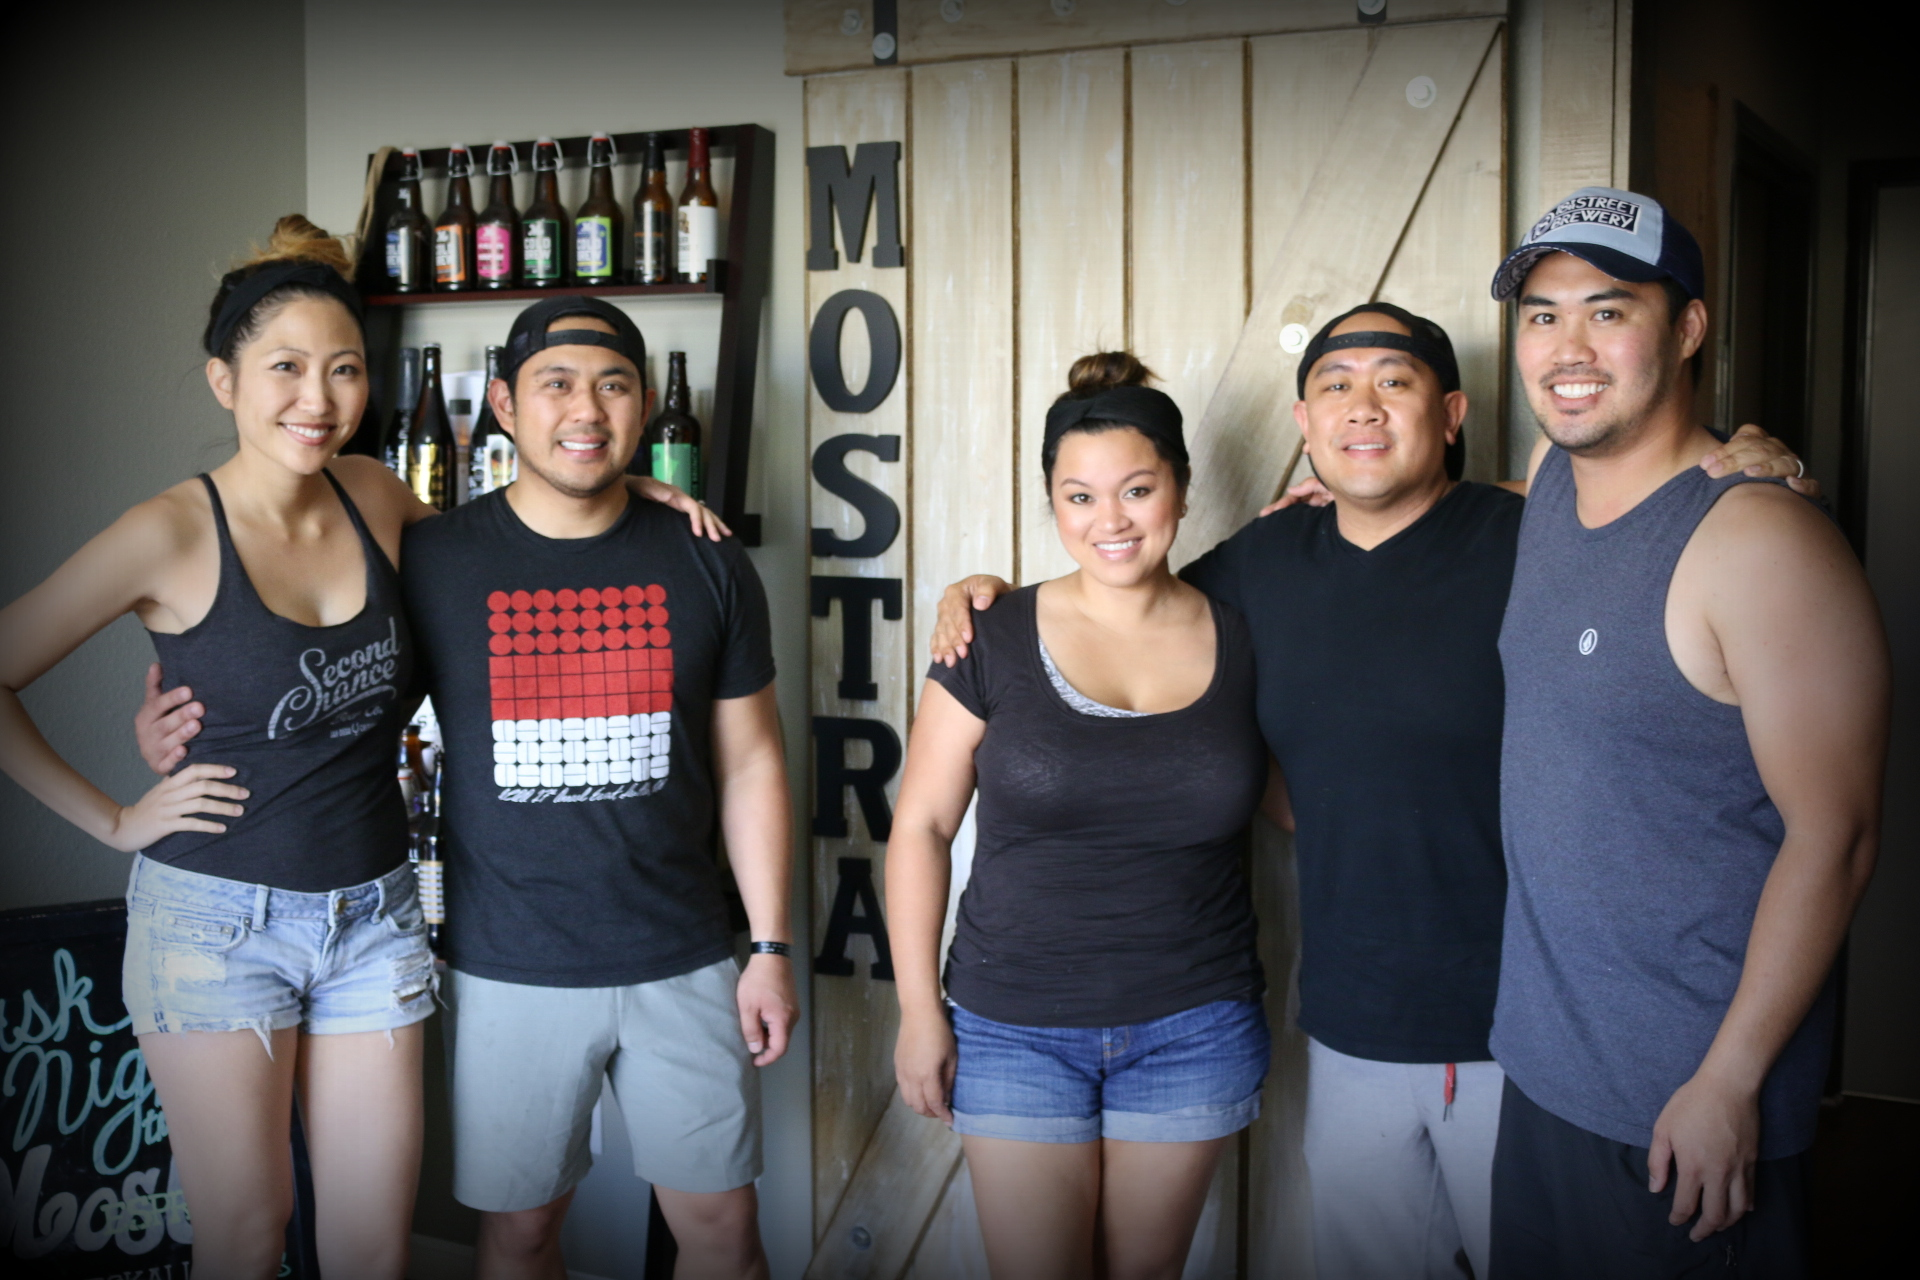 Owners of  Mostra Coffee  from left to right: Jelynn Malone, Sam Magtanong, Beverly Magtanong, Mike Arquines and RJ Ocubillo. Mostra Coffee is located at  12225 World Rade Drive, San Diego, CA 92128 . They're tasting room and cafe is open Wednesdays and Saturdays from 9 a.m. to 2 p.m.